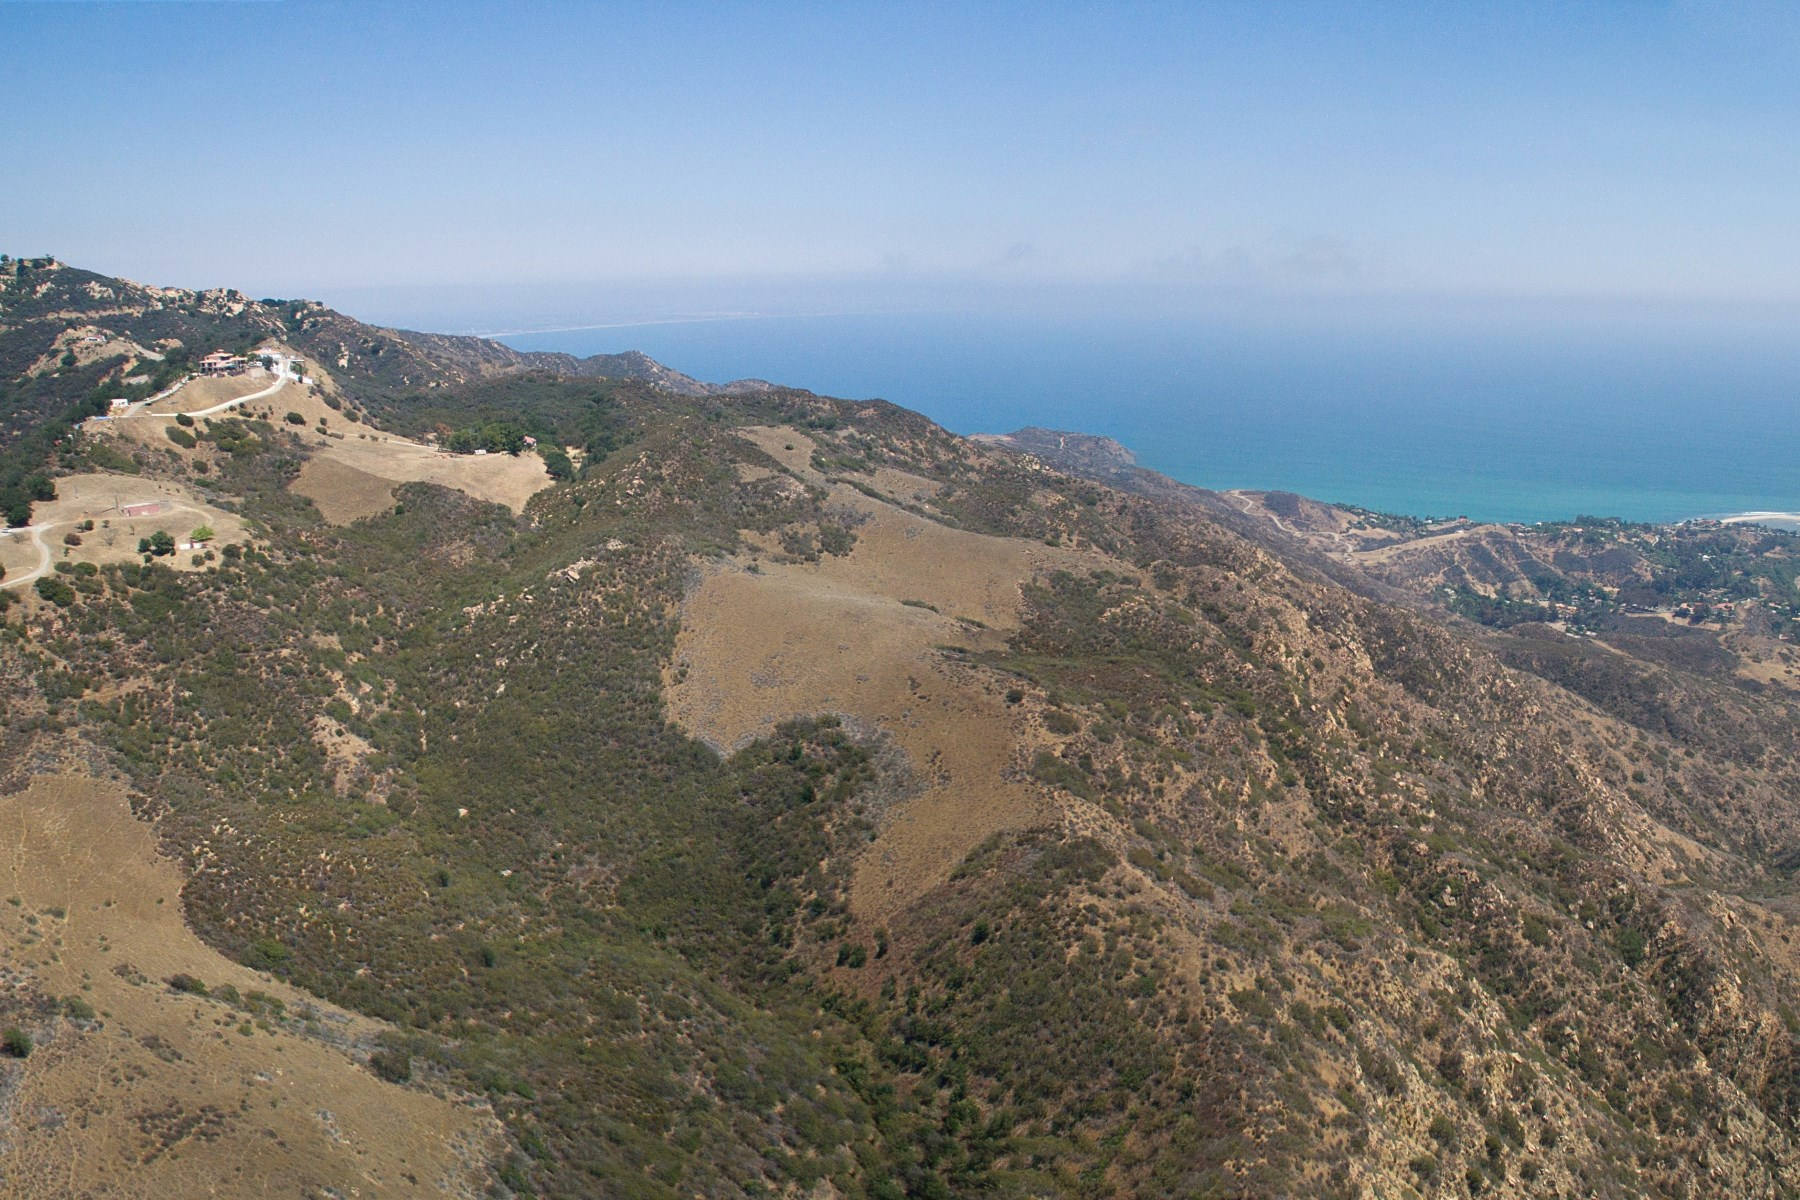 Terreno por un Venta en Approx 80 Acre Ocean View Burnout Lot 24800 Piuma Rd Malibu, California, 90265 Estados Unidos